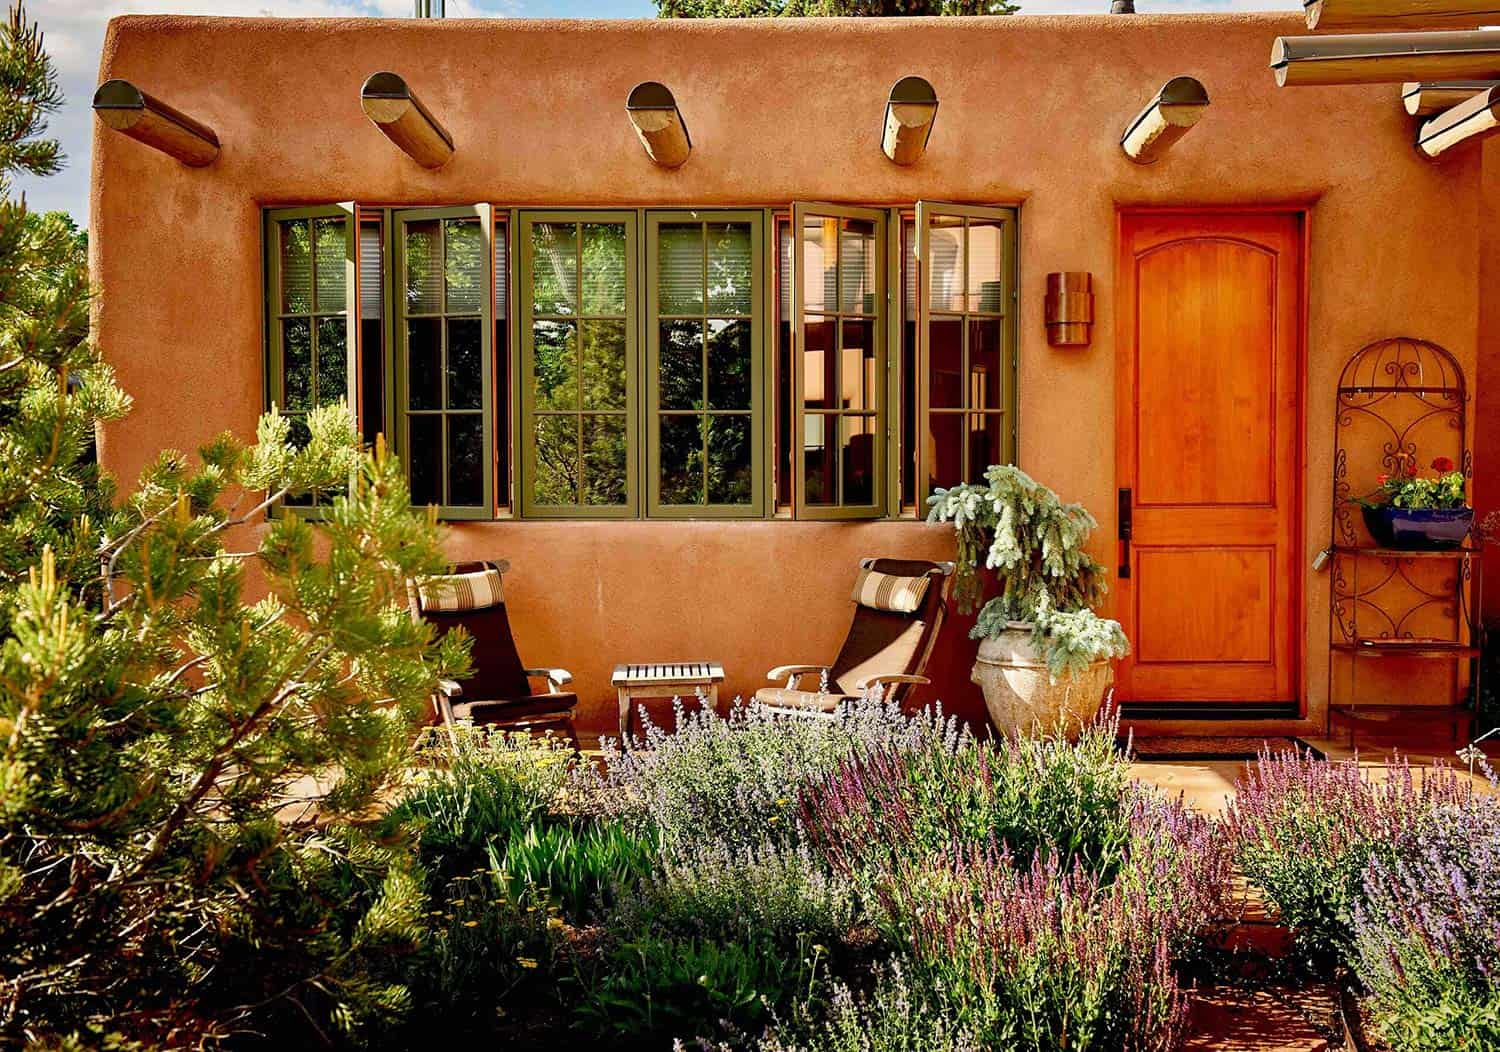 The 10 Best Airbnb Rentals In Santa Fe New Mexico